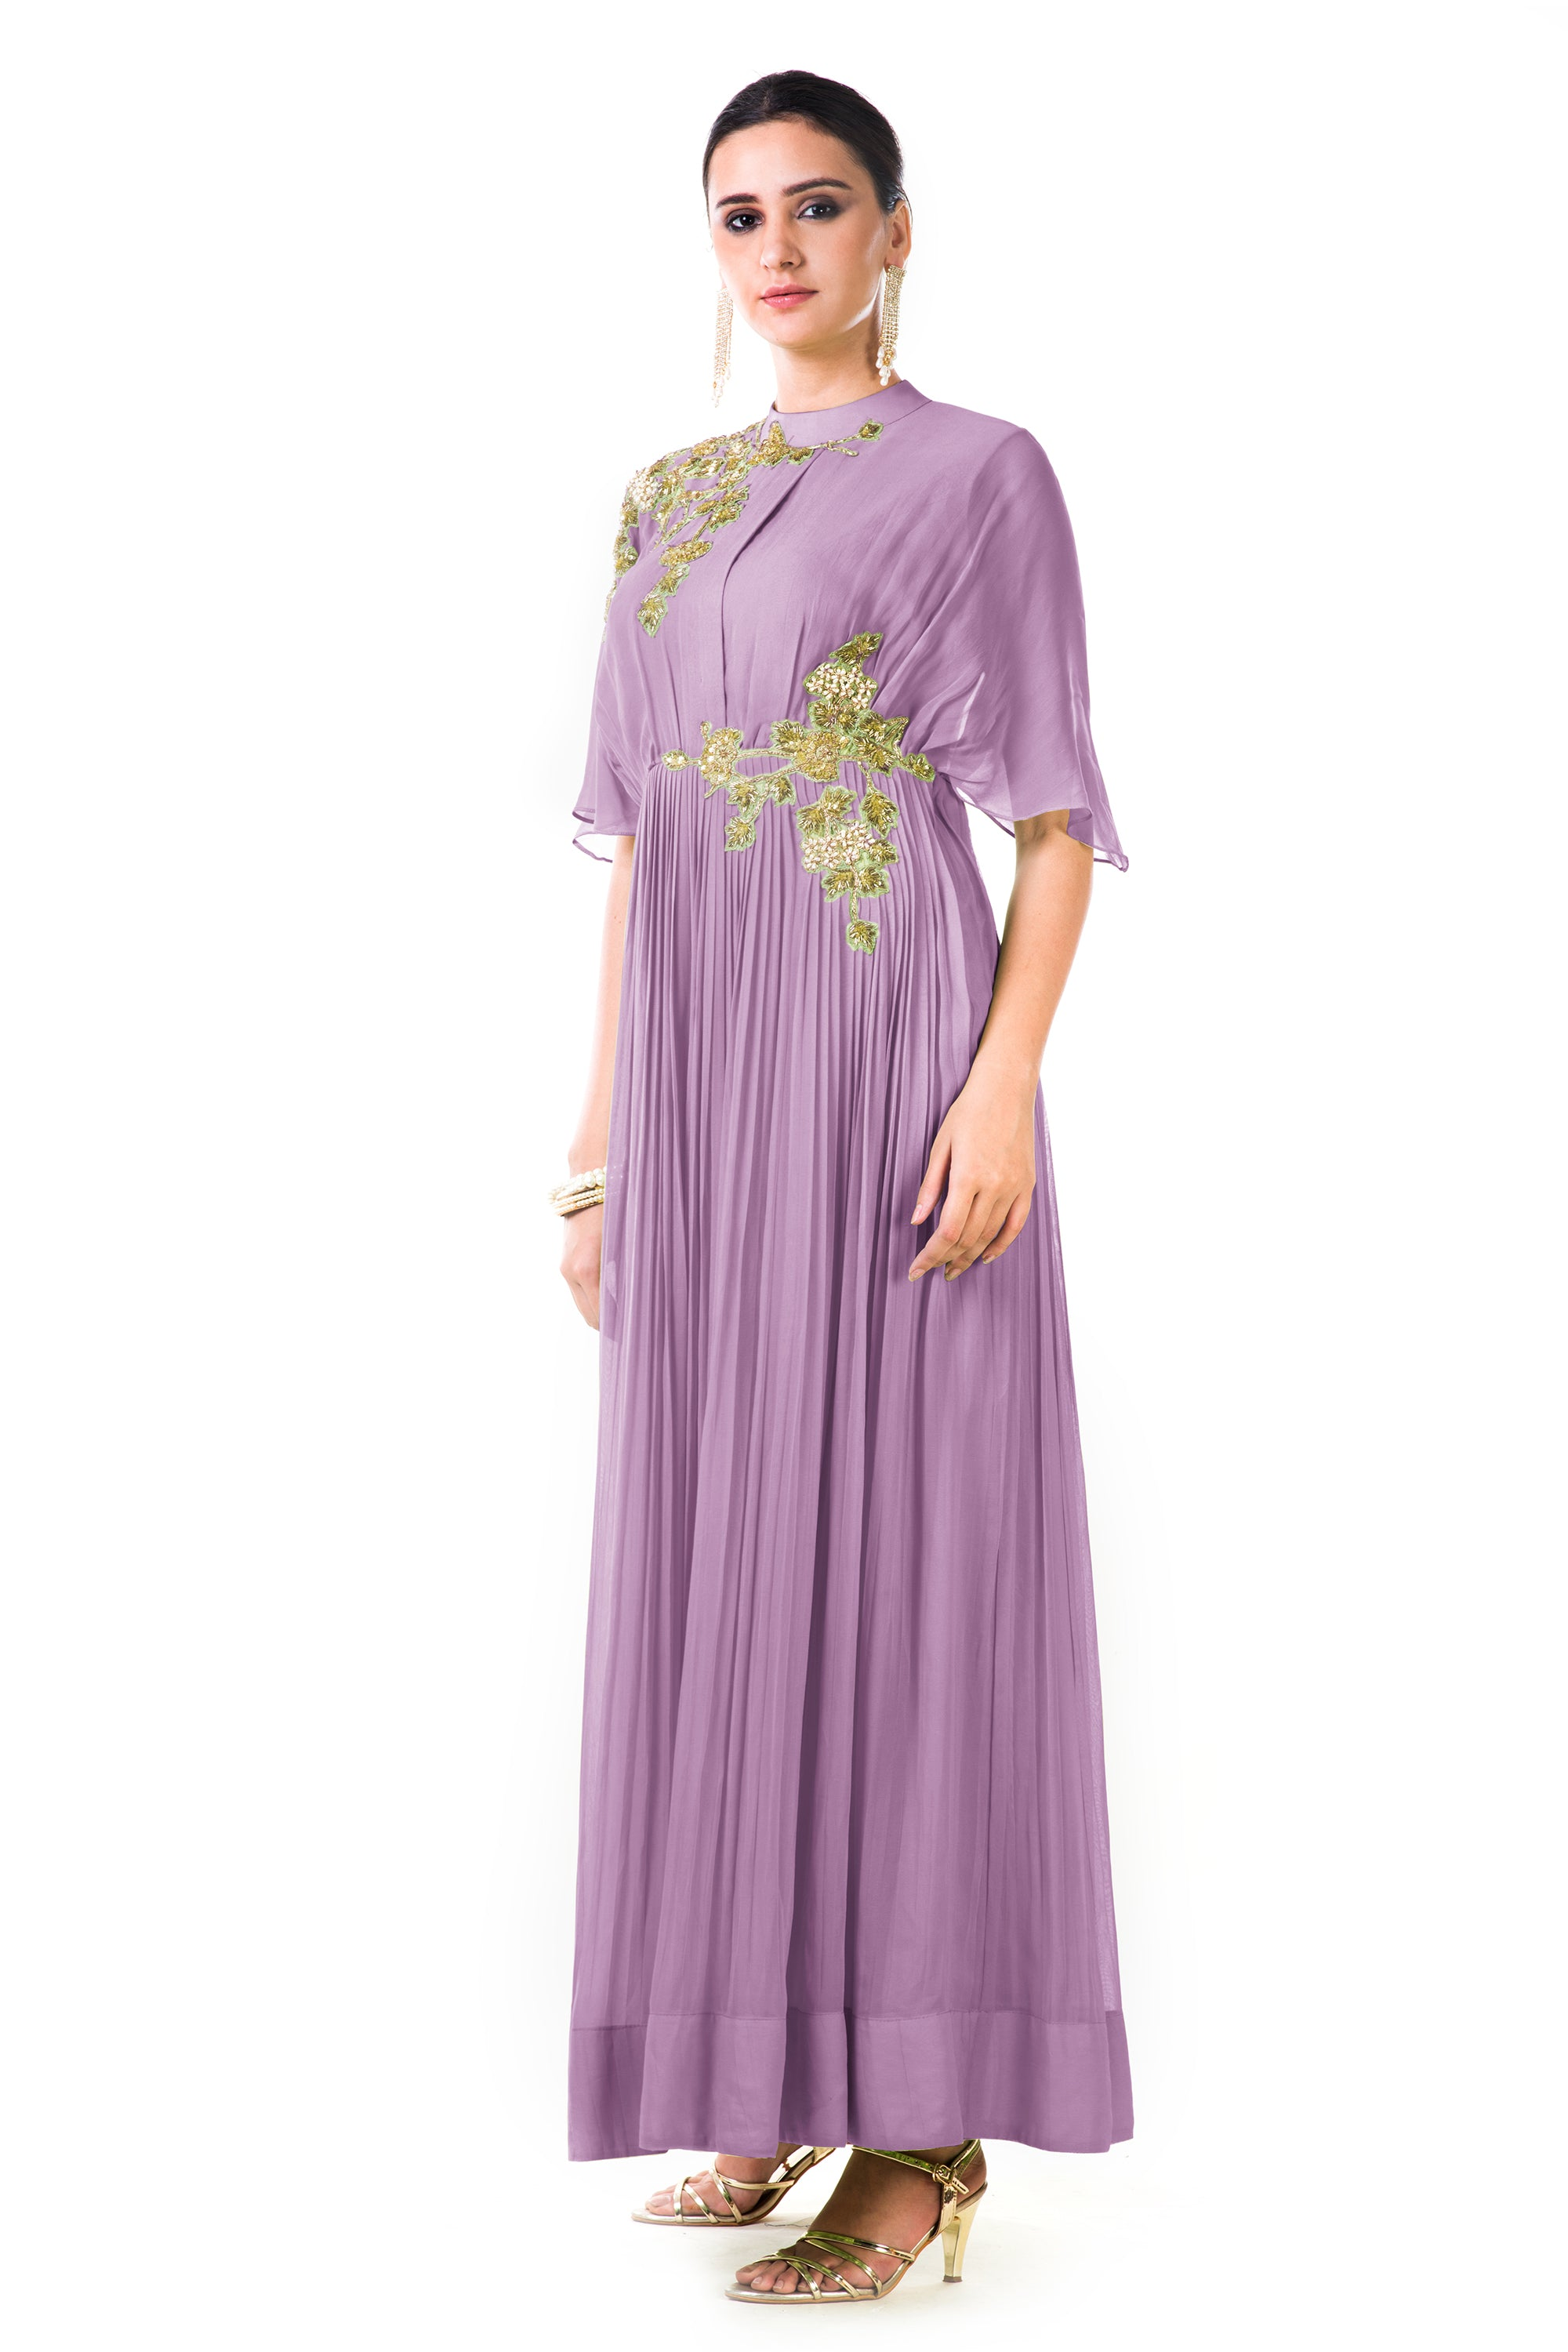 Lavender Overlapped Yoke Pleated Dress Side